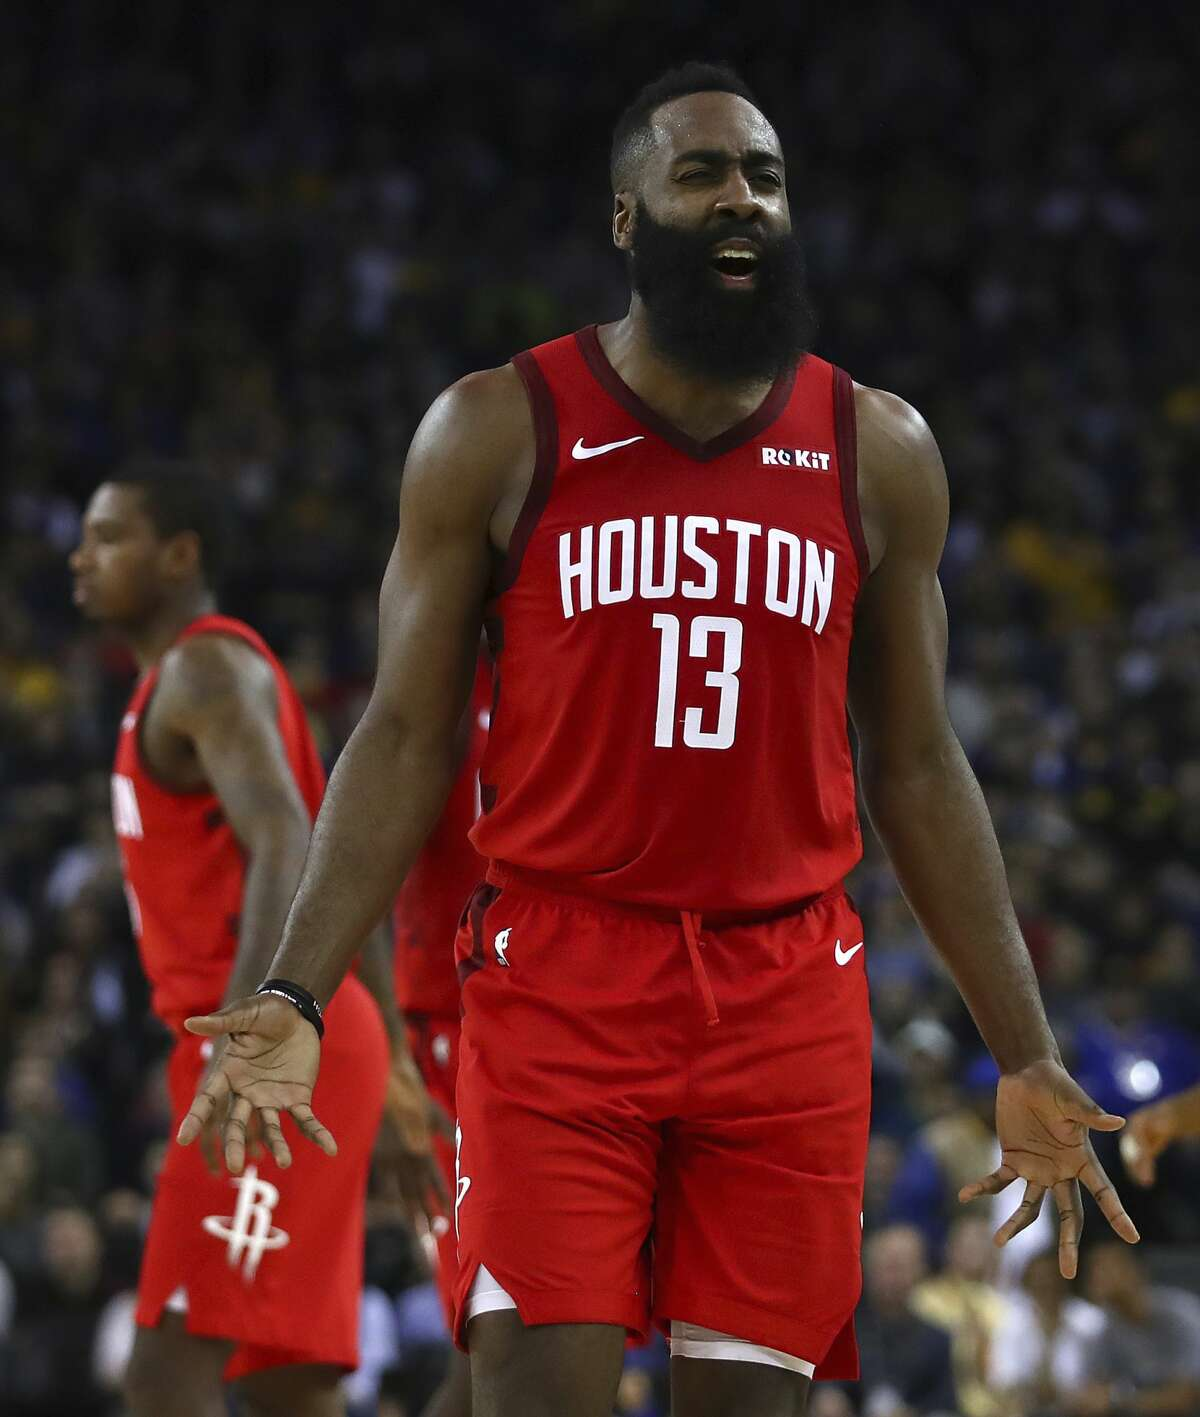 Houston Rockets' James Harden reacts during the second half of the team's NBA basketball game against the Golden State Warriors Thursday, Jan. 3, 2019, in Oakland, Calif. (AP Photo/Ben Margot)